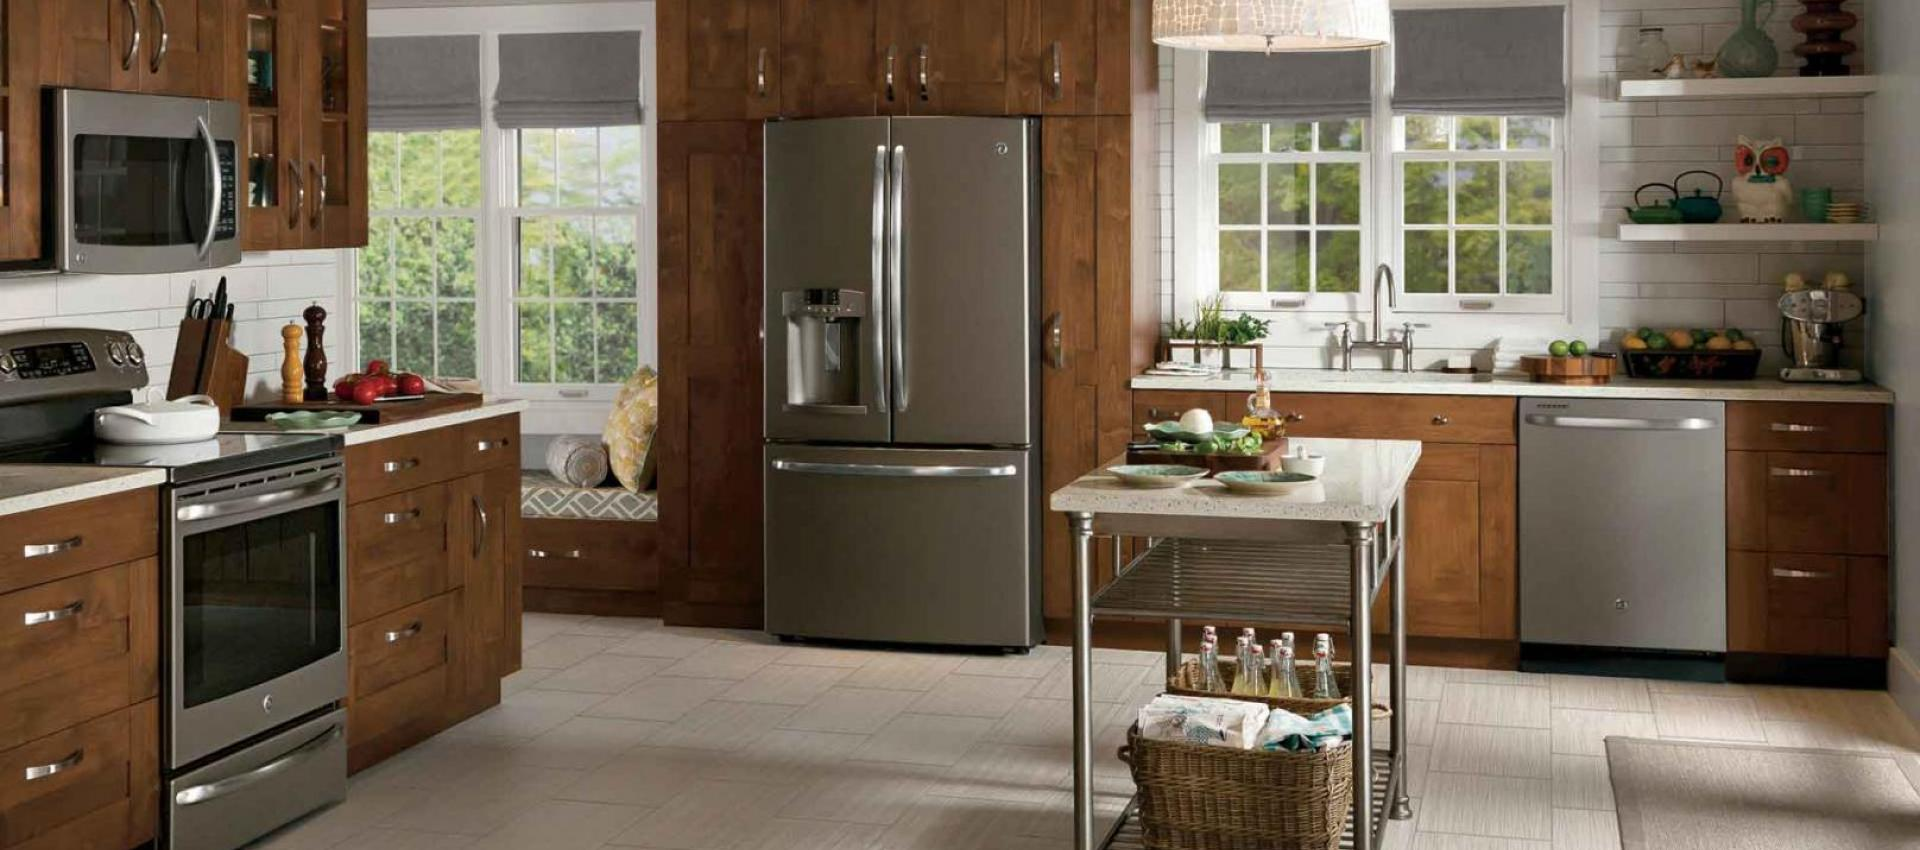 Kitchen Appliance Repair in Denver